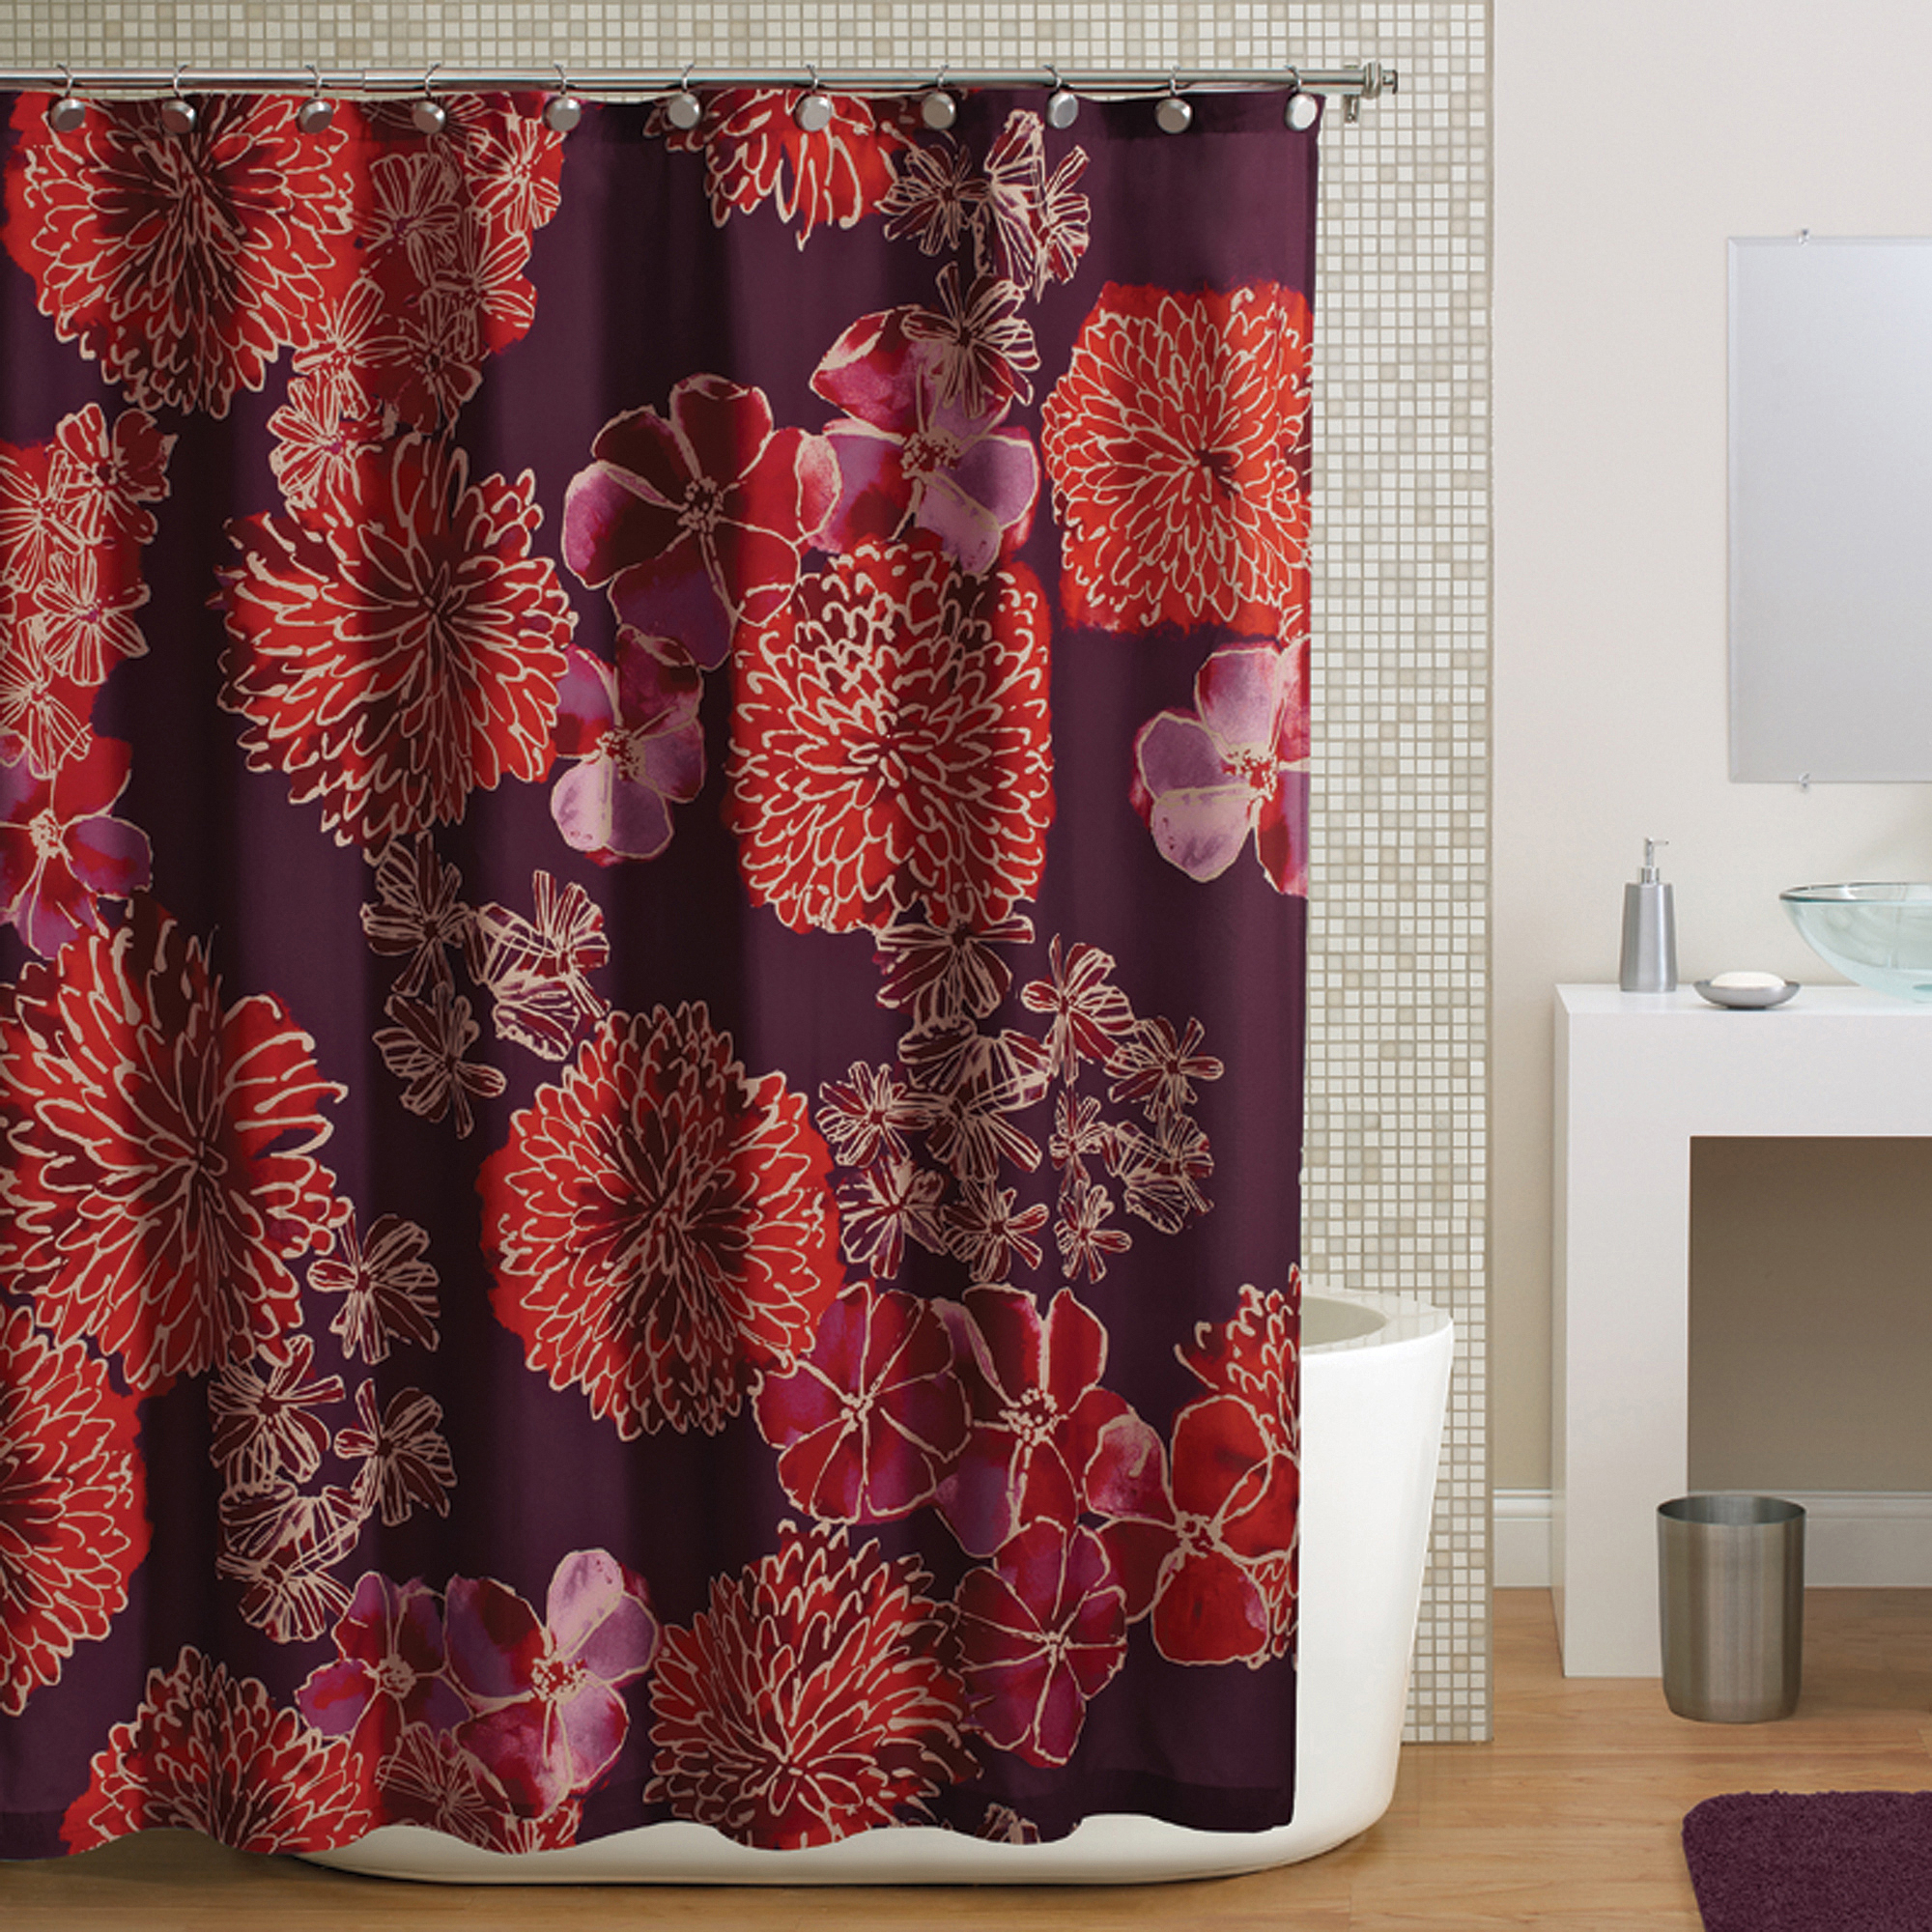 Hometrends Watercolor Floral Shower Curtain, Purple